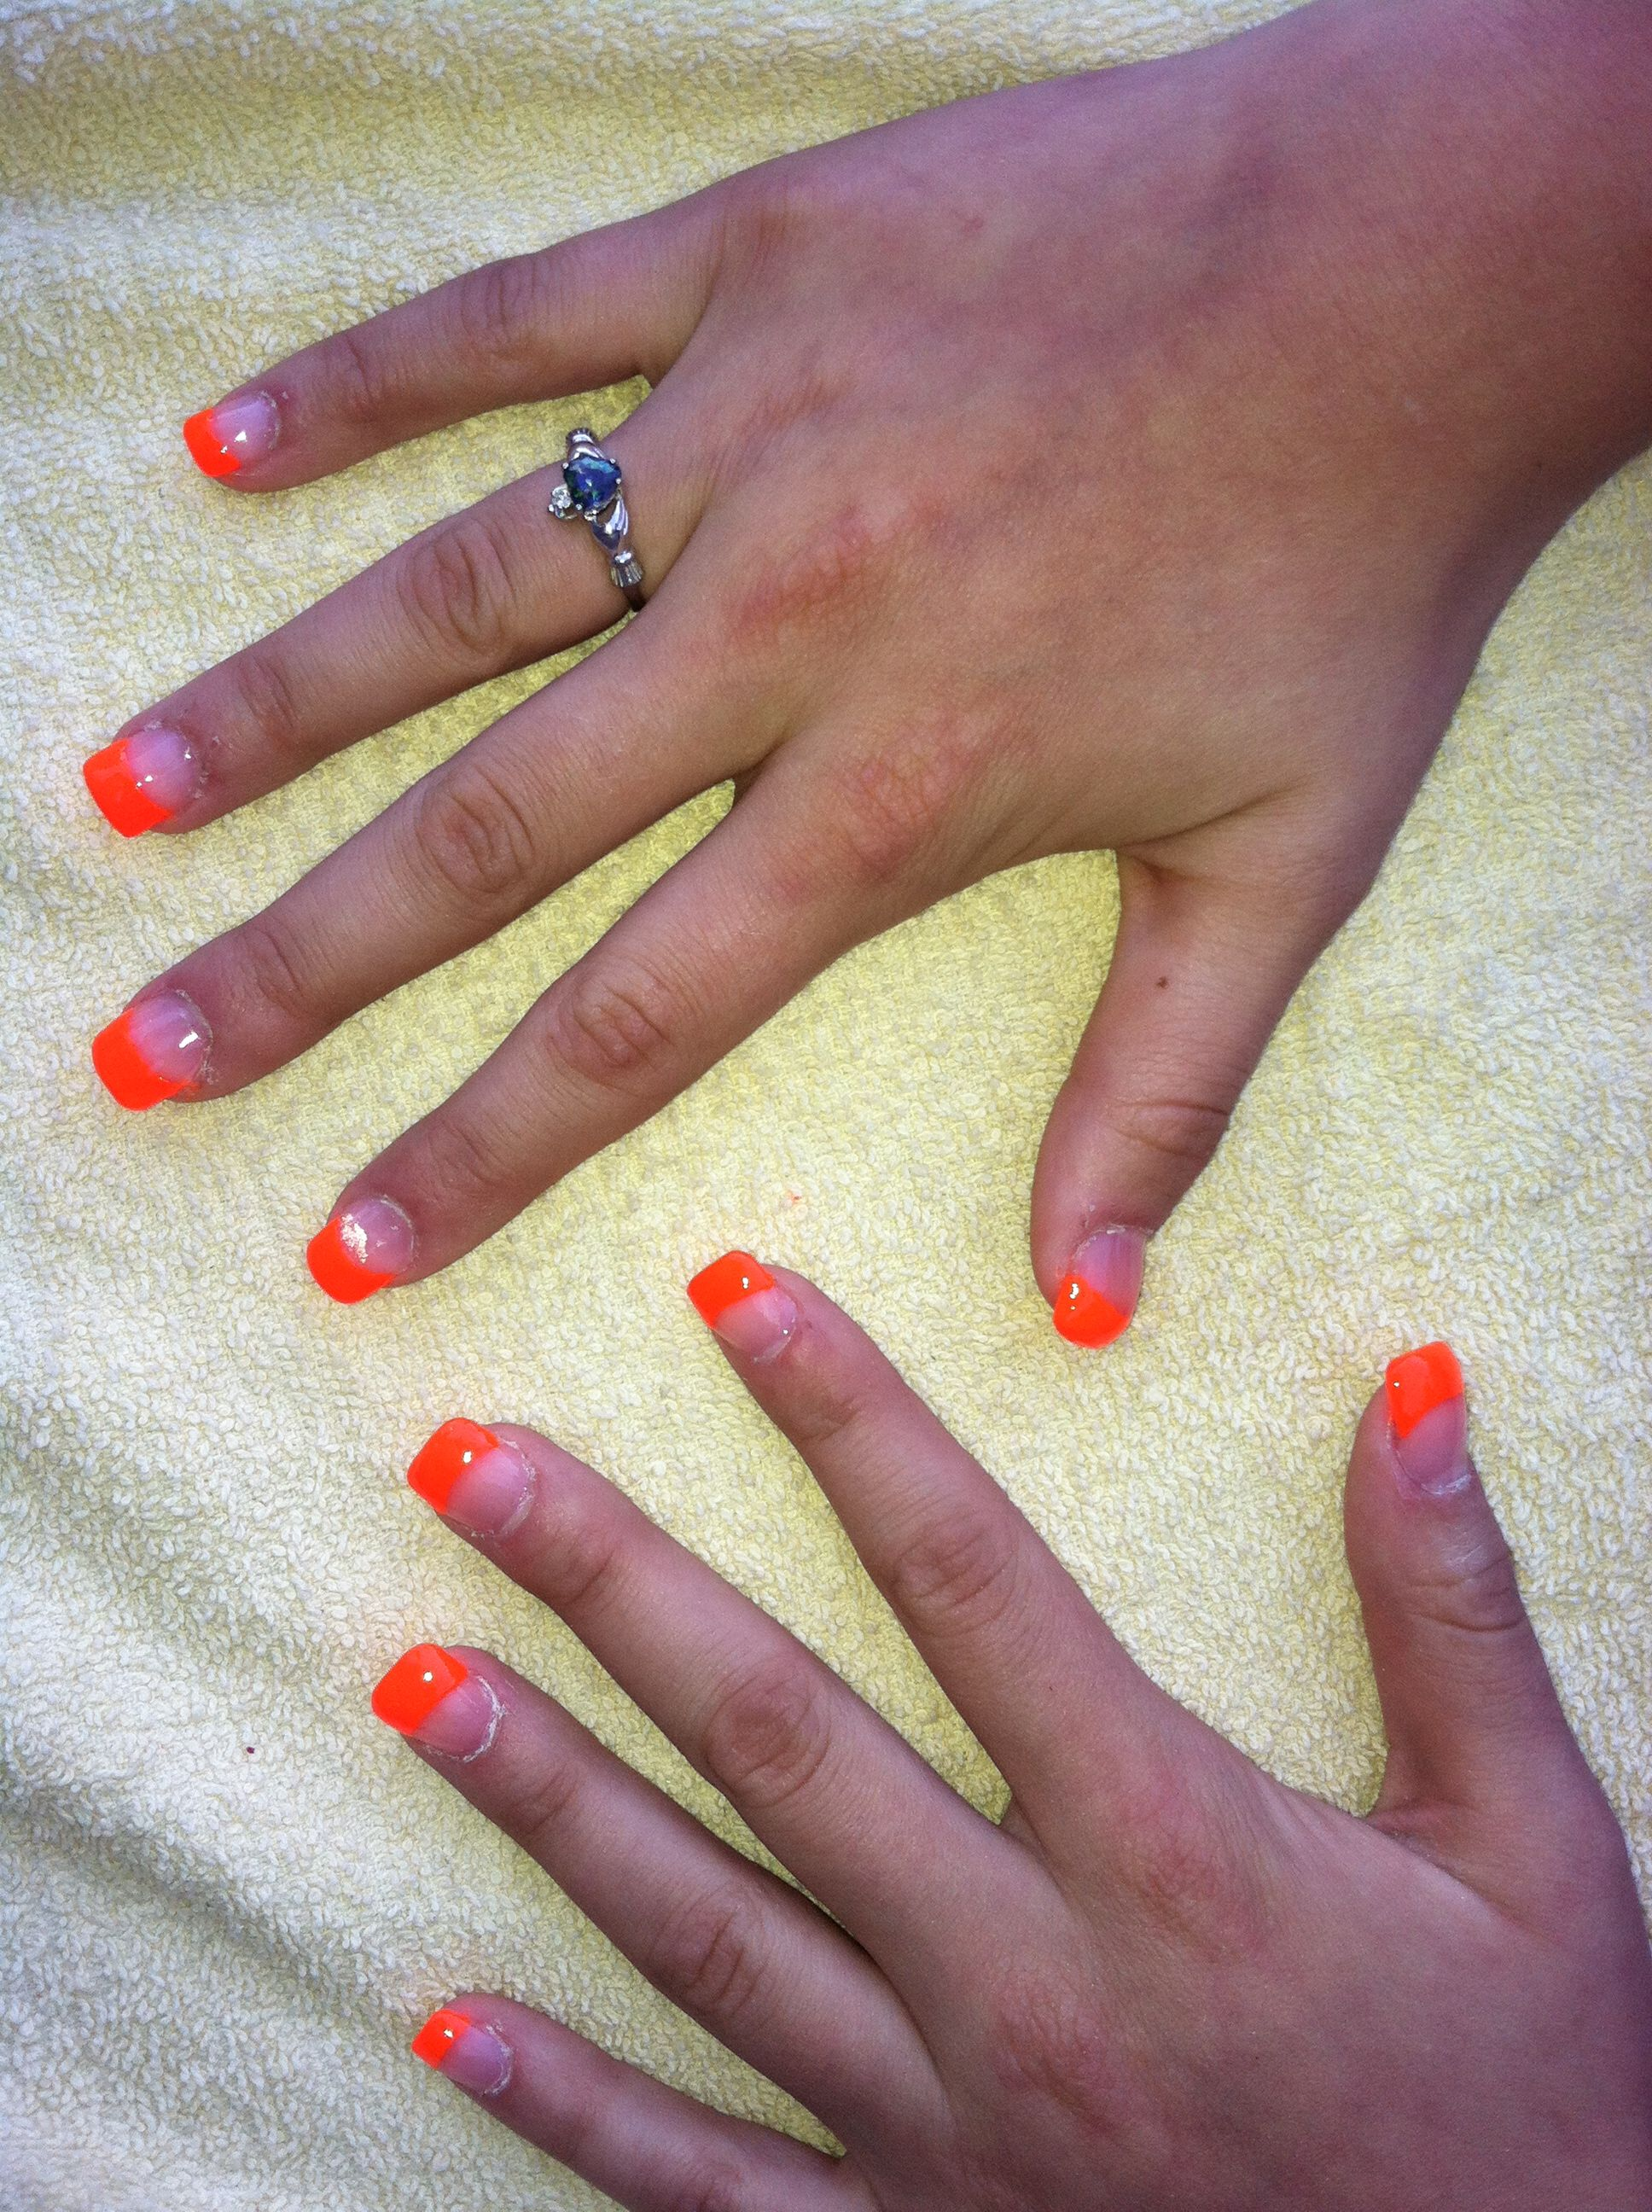 Neon orange French tip on acrylic free form nails | Hair ...